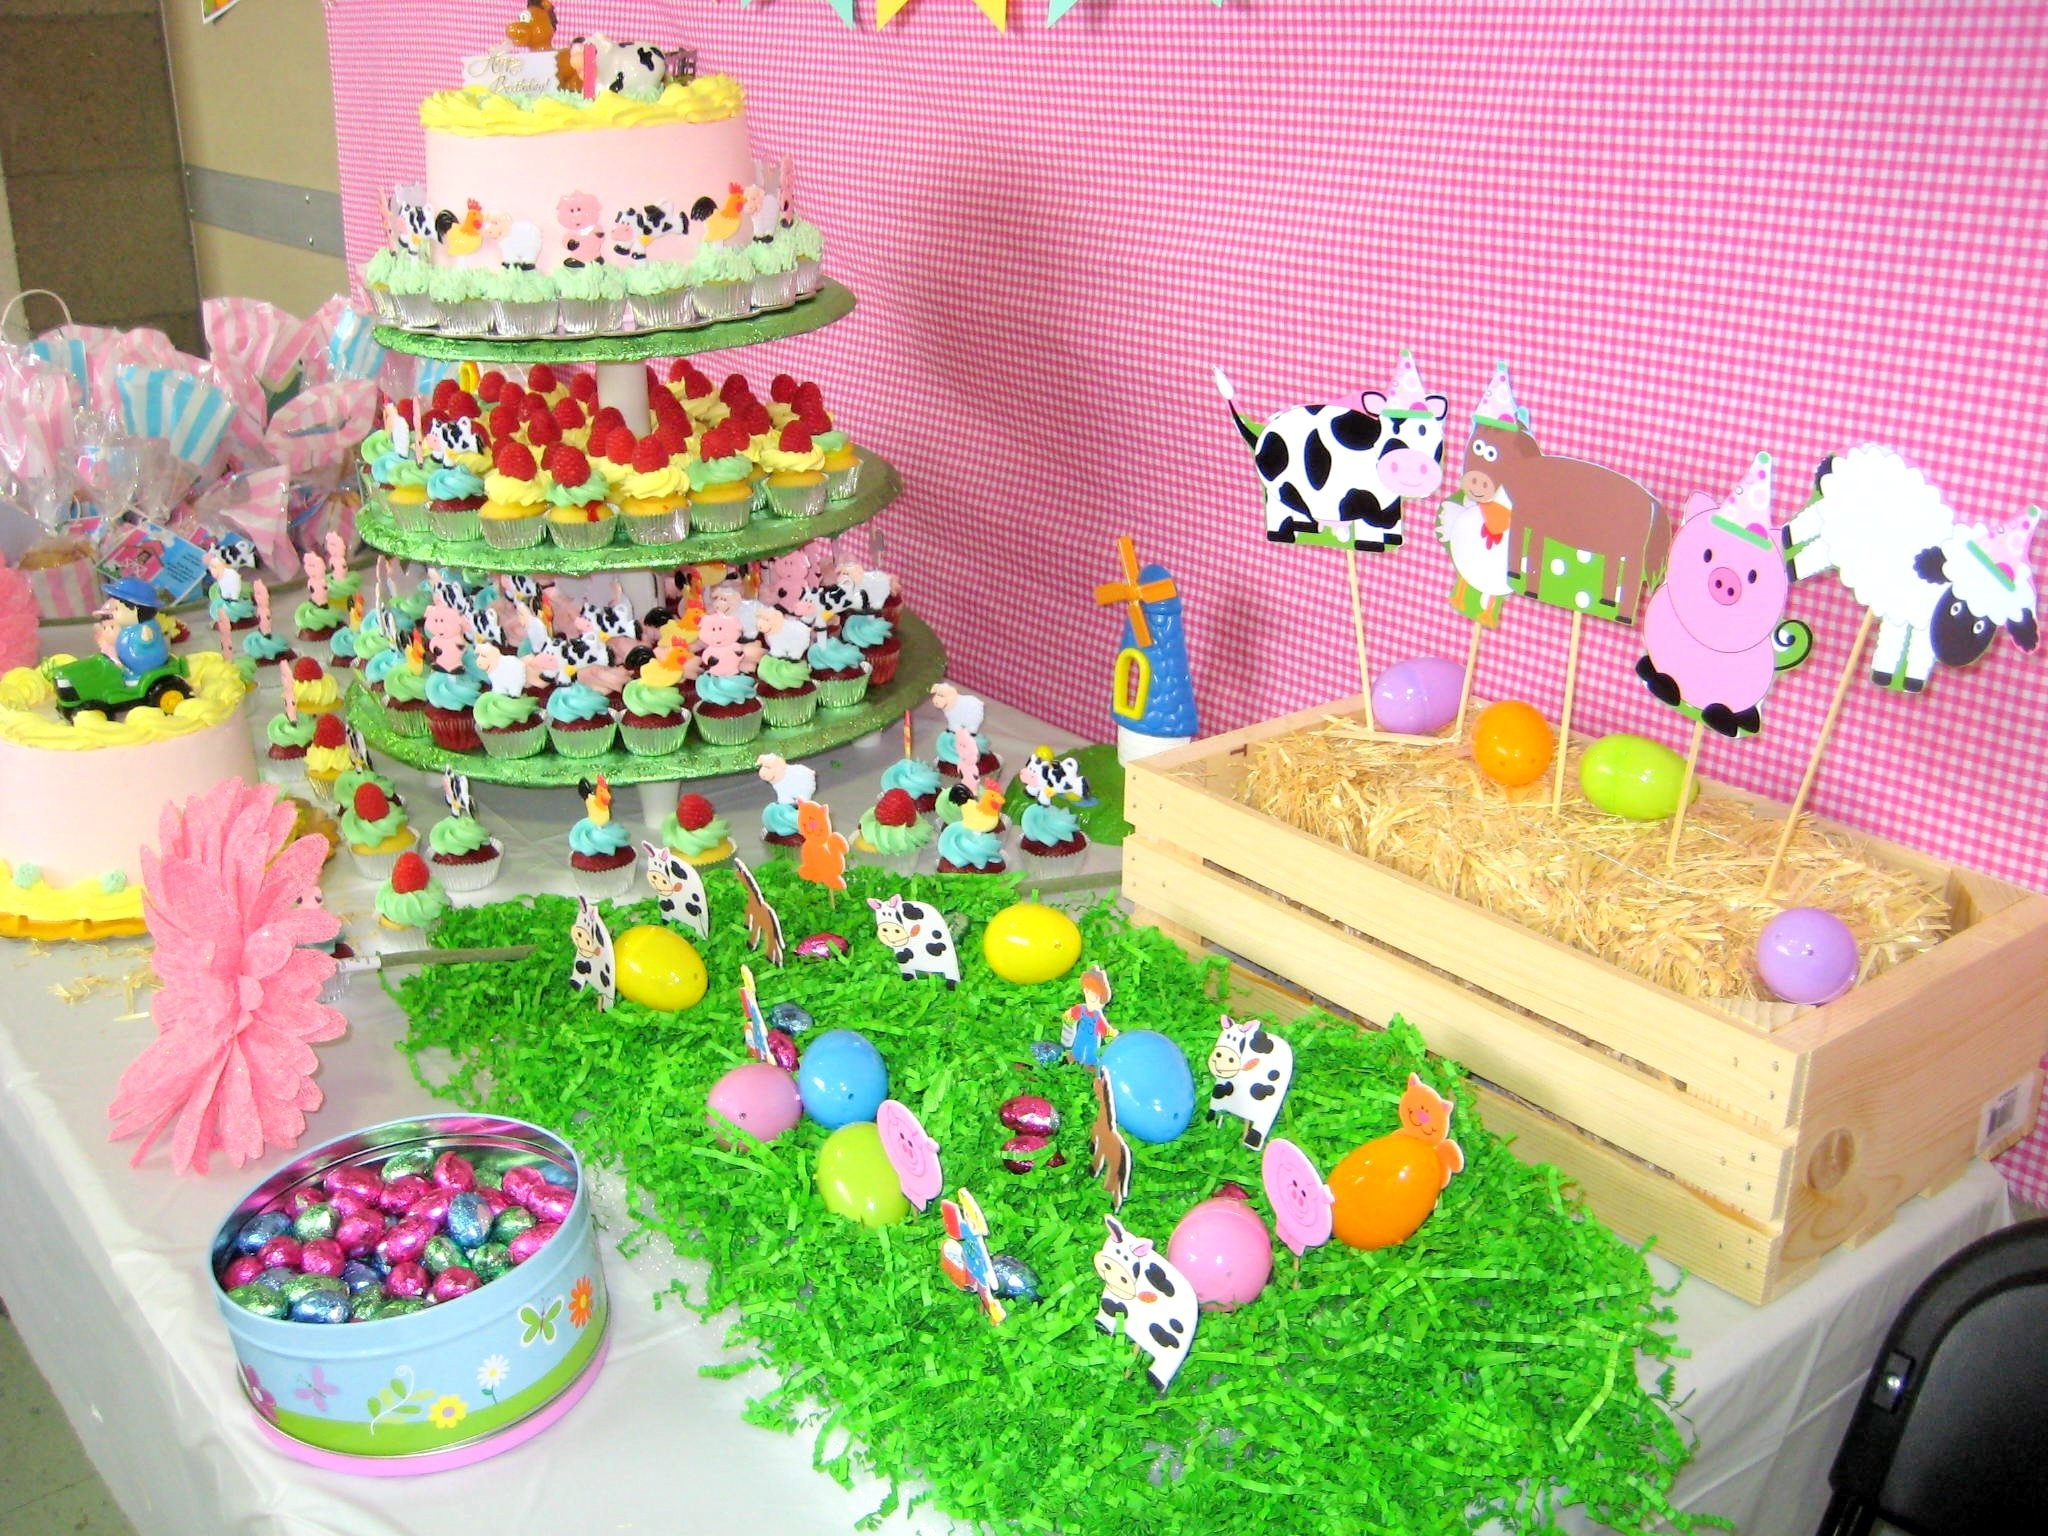 10 Most Popular Birthday Party Ideas For 10 Yr Old Girl themes birthday game ideas for a 10 year old birthday party plus 2